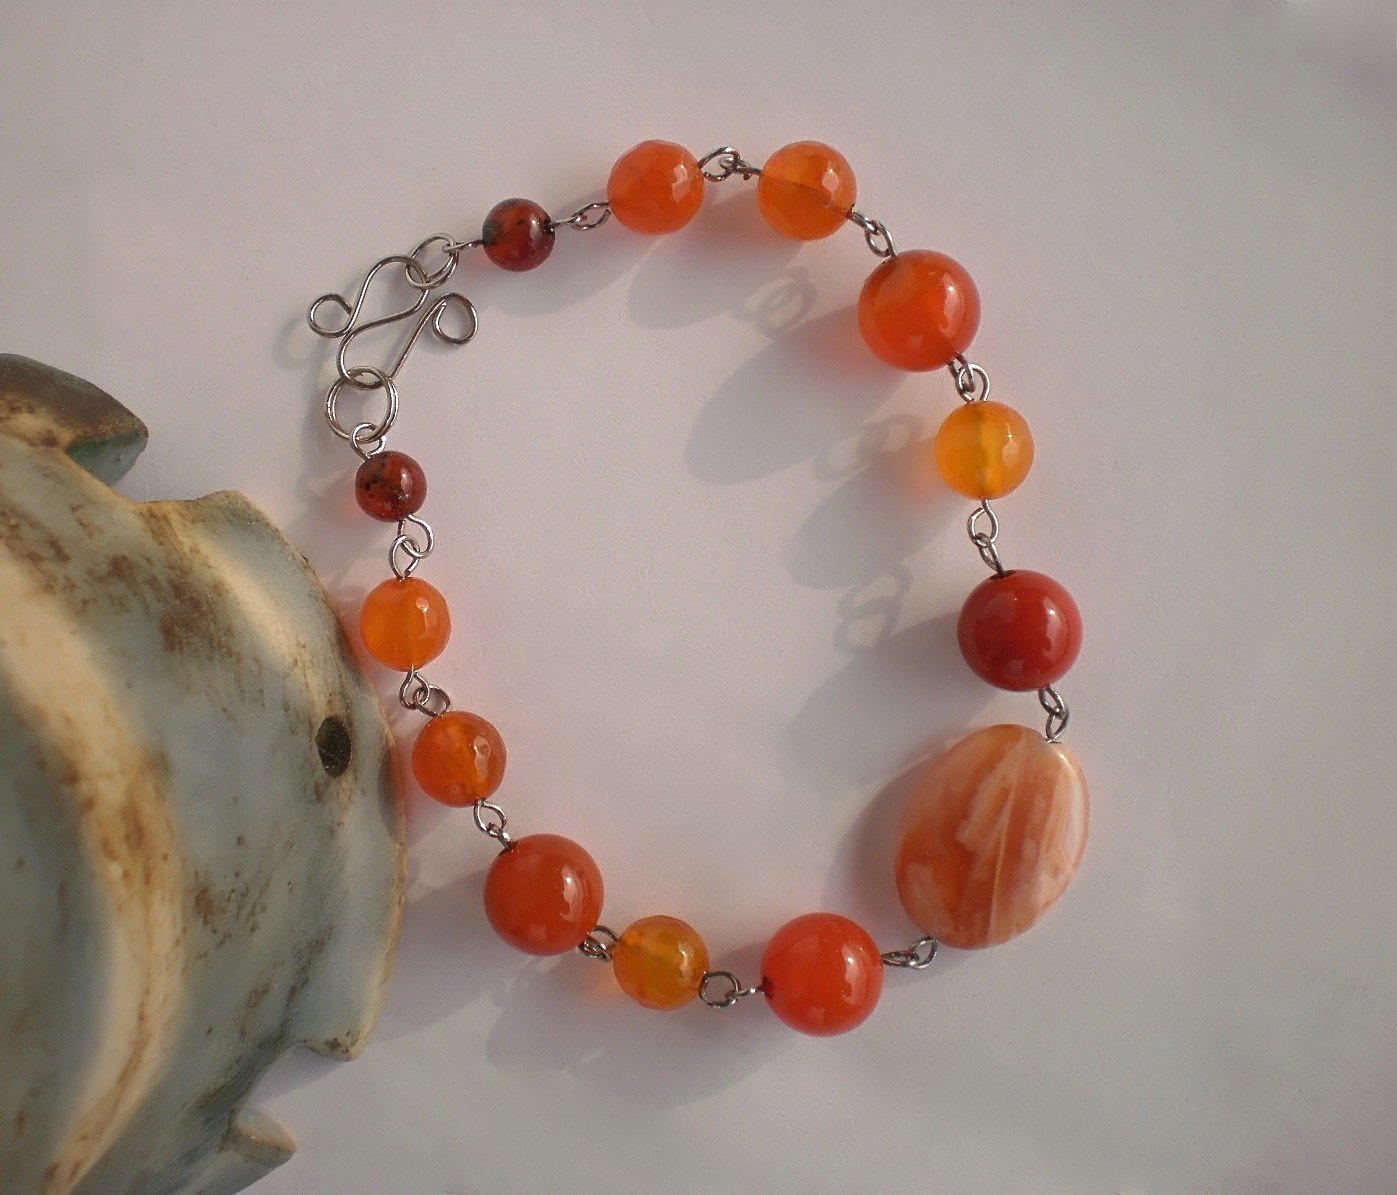 Semi-Precious Agate Beaded Bracelet Agate Jewelry Handcrafted Designer Gift Jewelry Link Bracelet